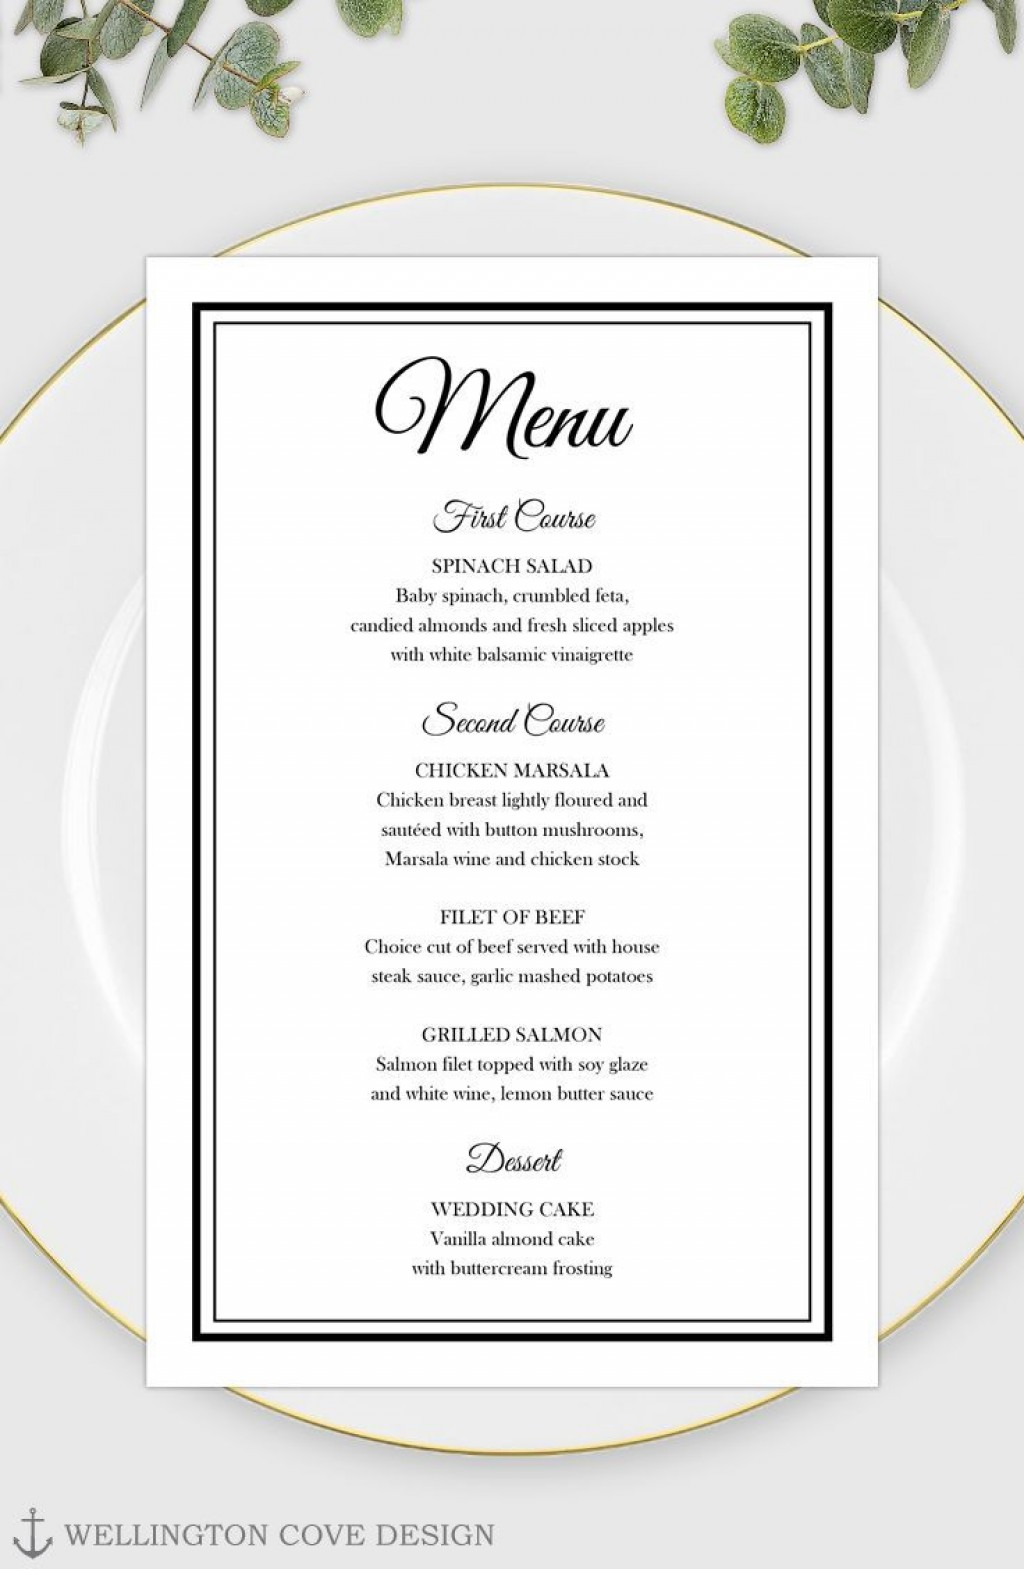 003 Exceptional Wedding Menu Card Template Word Design Large